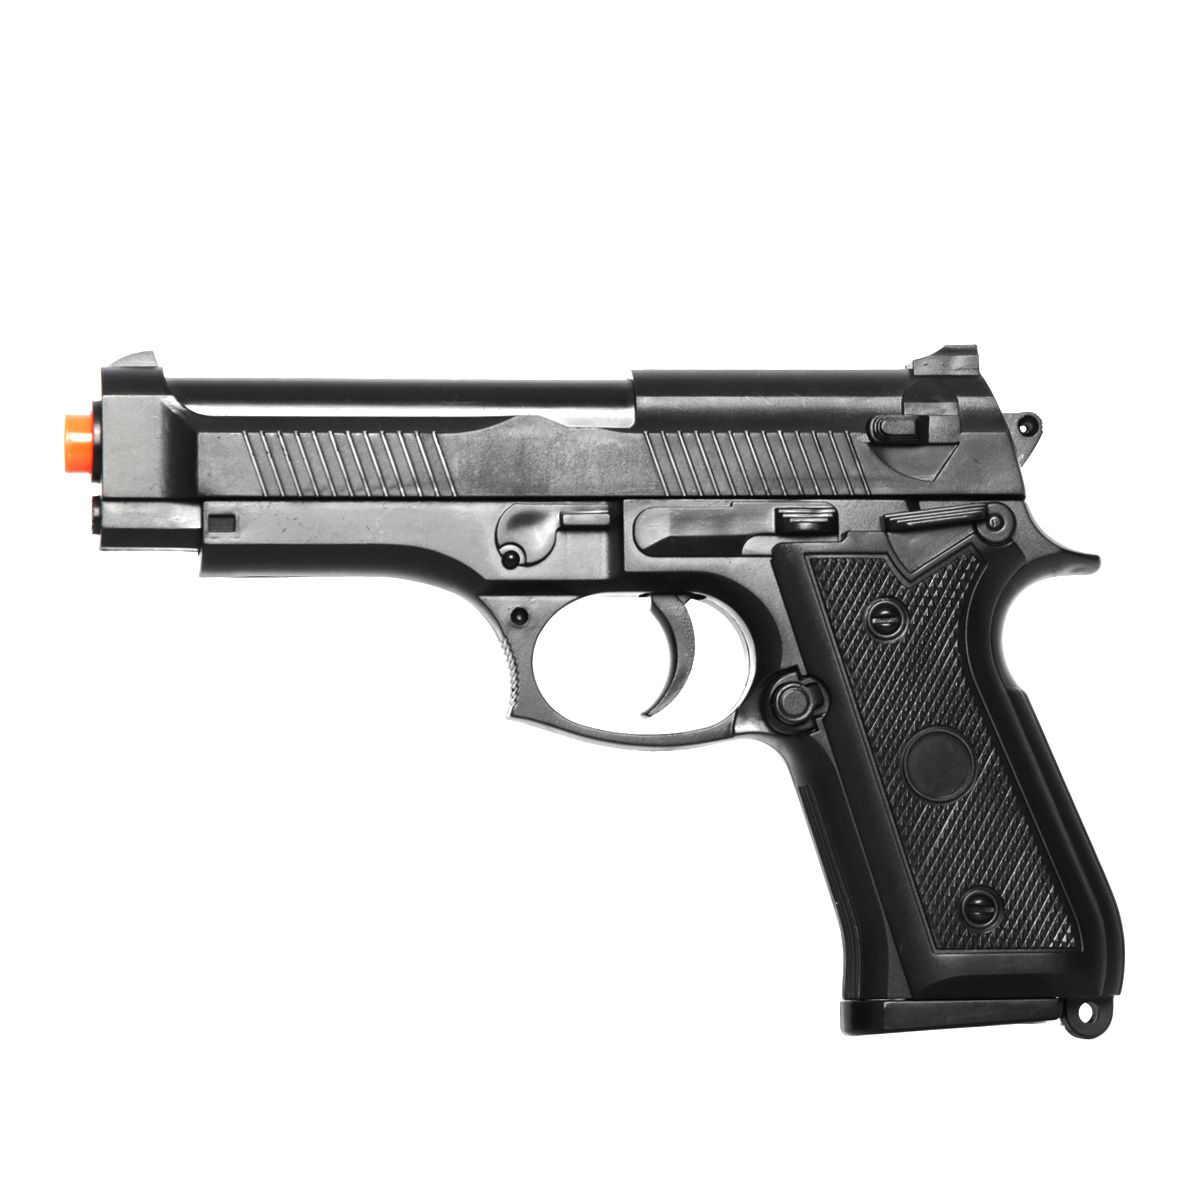 Pistola Airsoft VG P92 - 038 Mola 6mm